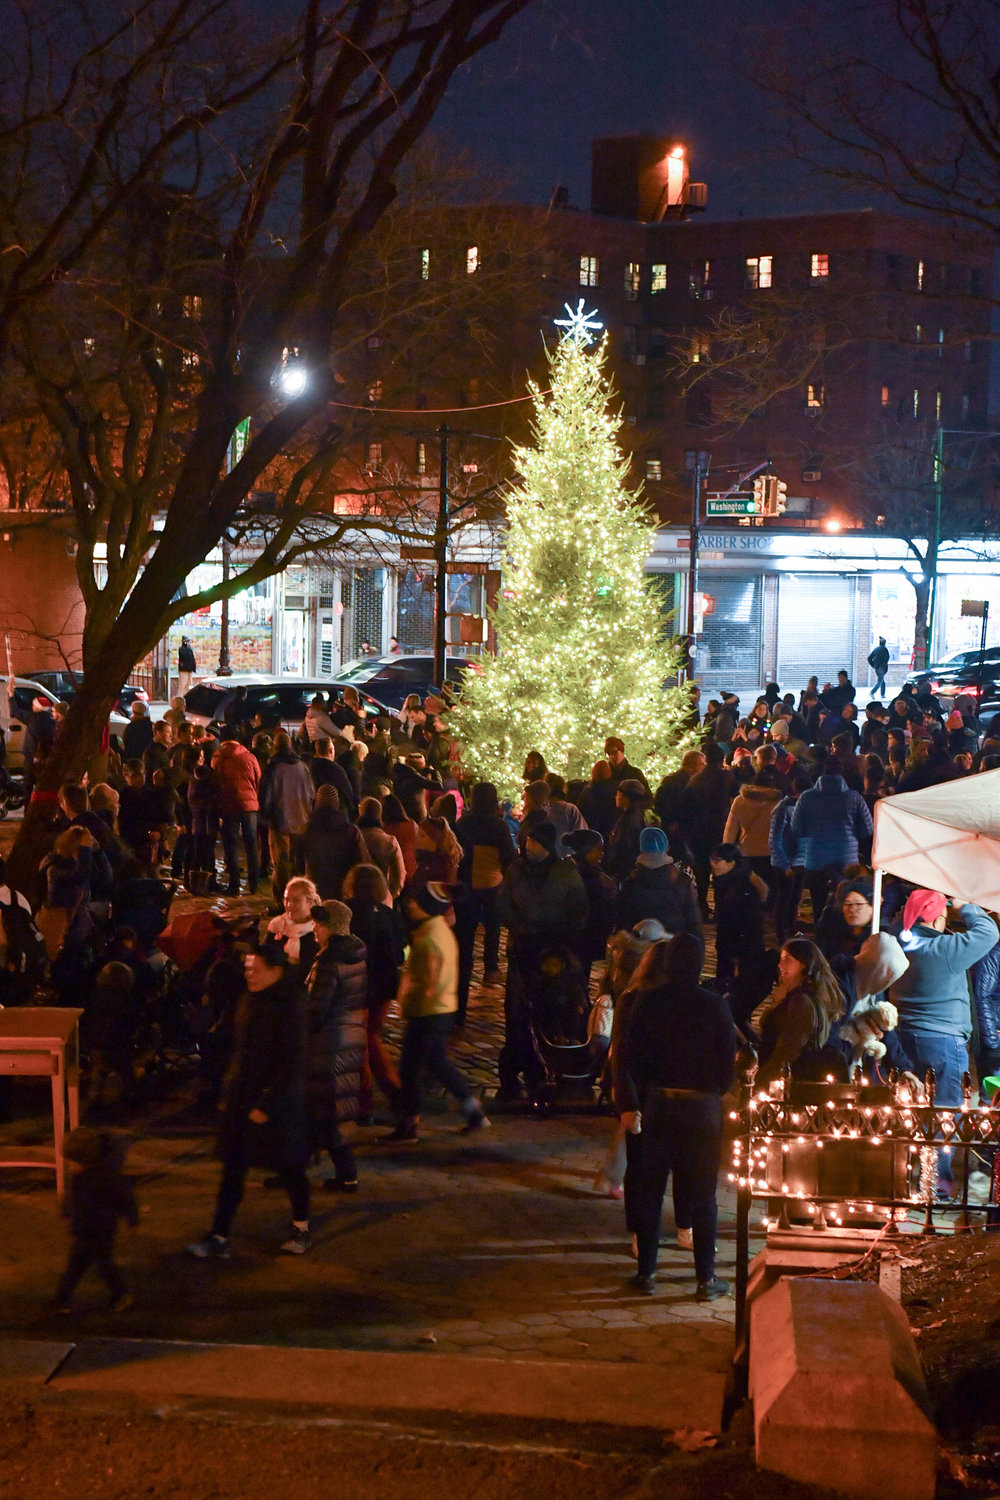 3rd Annual Fort Greene Park Tree Lighting presented by the Fort Greene Park Conservancy and Myrtle Avenue Brooklyn Partnership, sponsored by Apple Bank. photo credit: Daniel Avila, NYC Parks